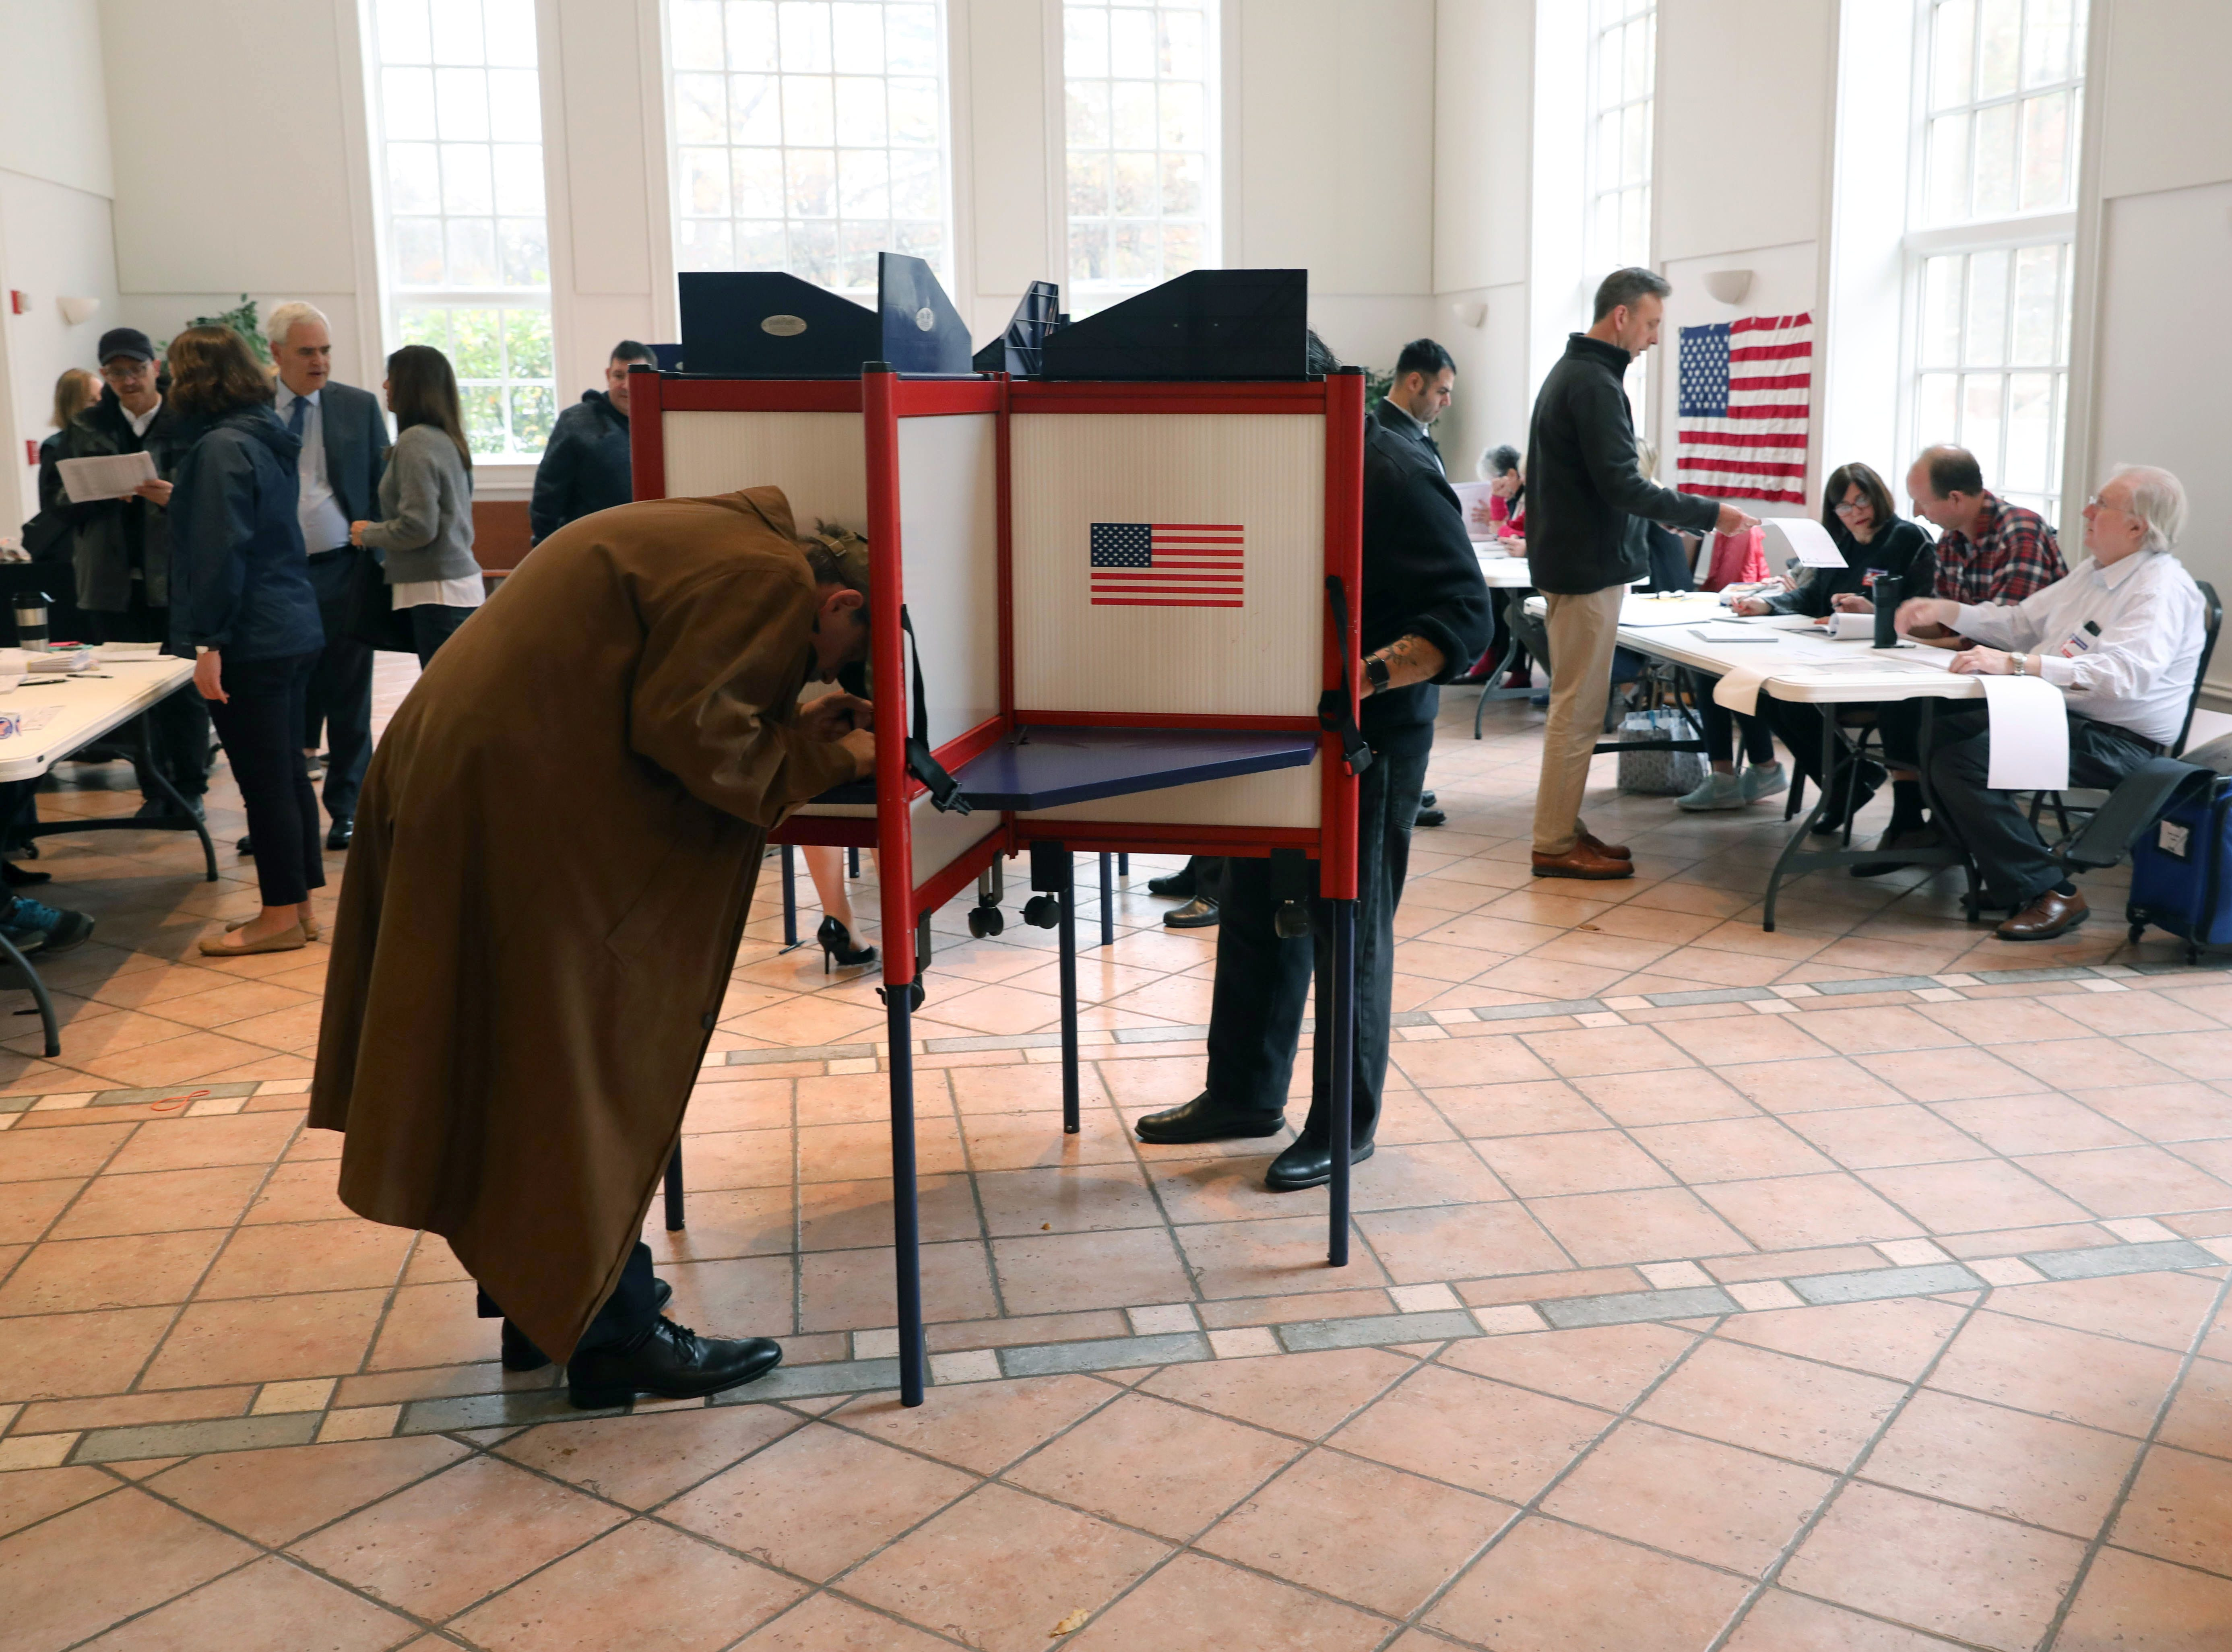 Voters fill in their ballots at the Presbyterian Church of Mount Kisco, Nov. 6, 2018.